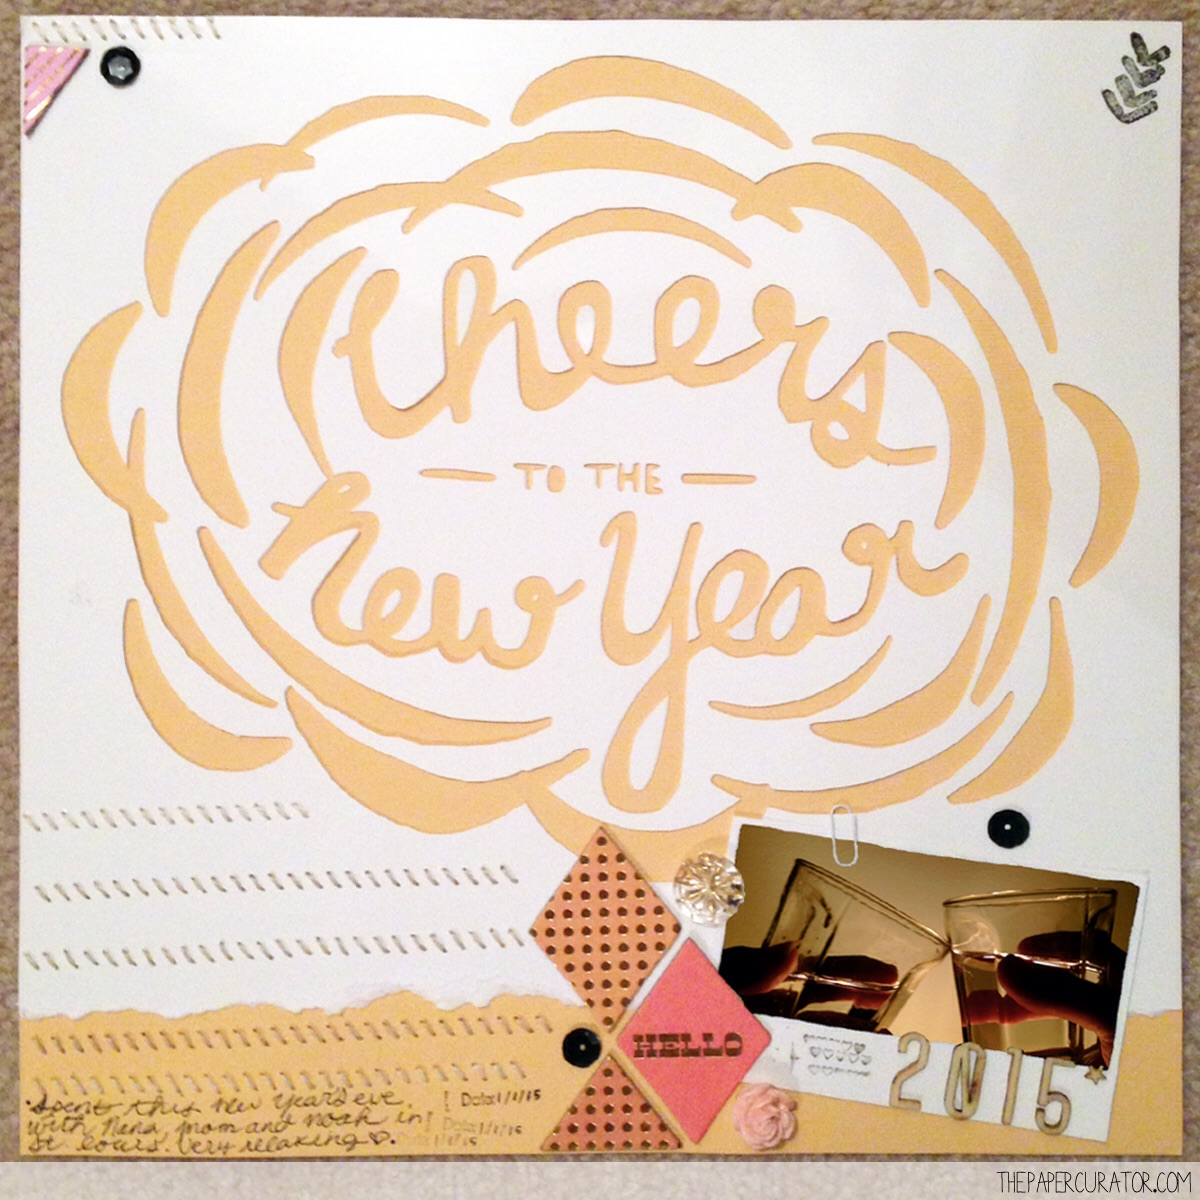 'CHEERS TO THE NEW YEAR' | THE PAPER CURATOR